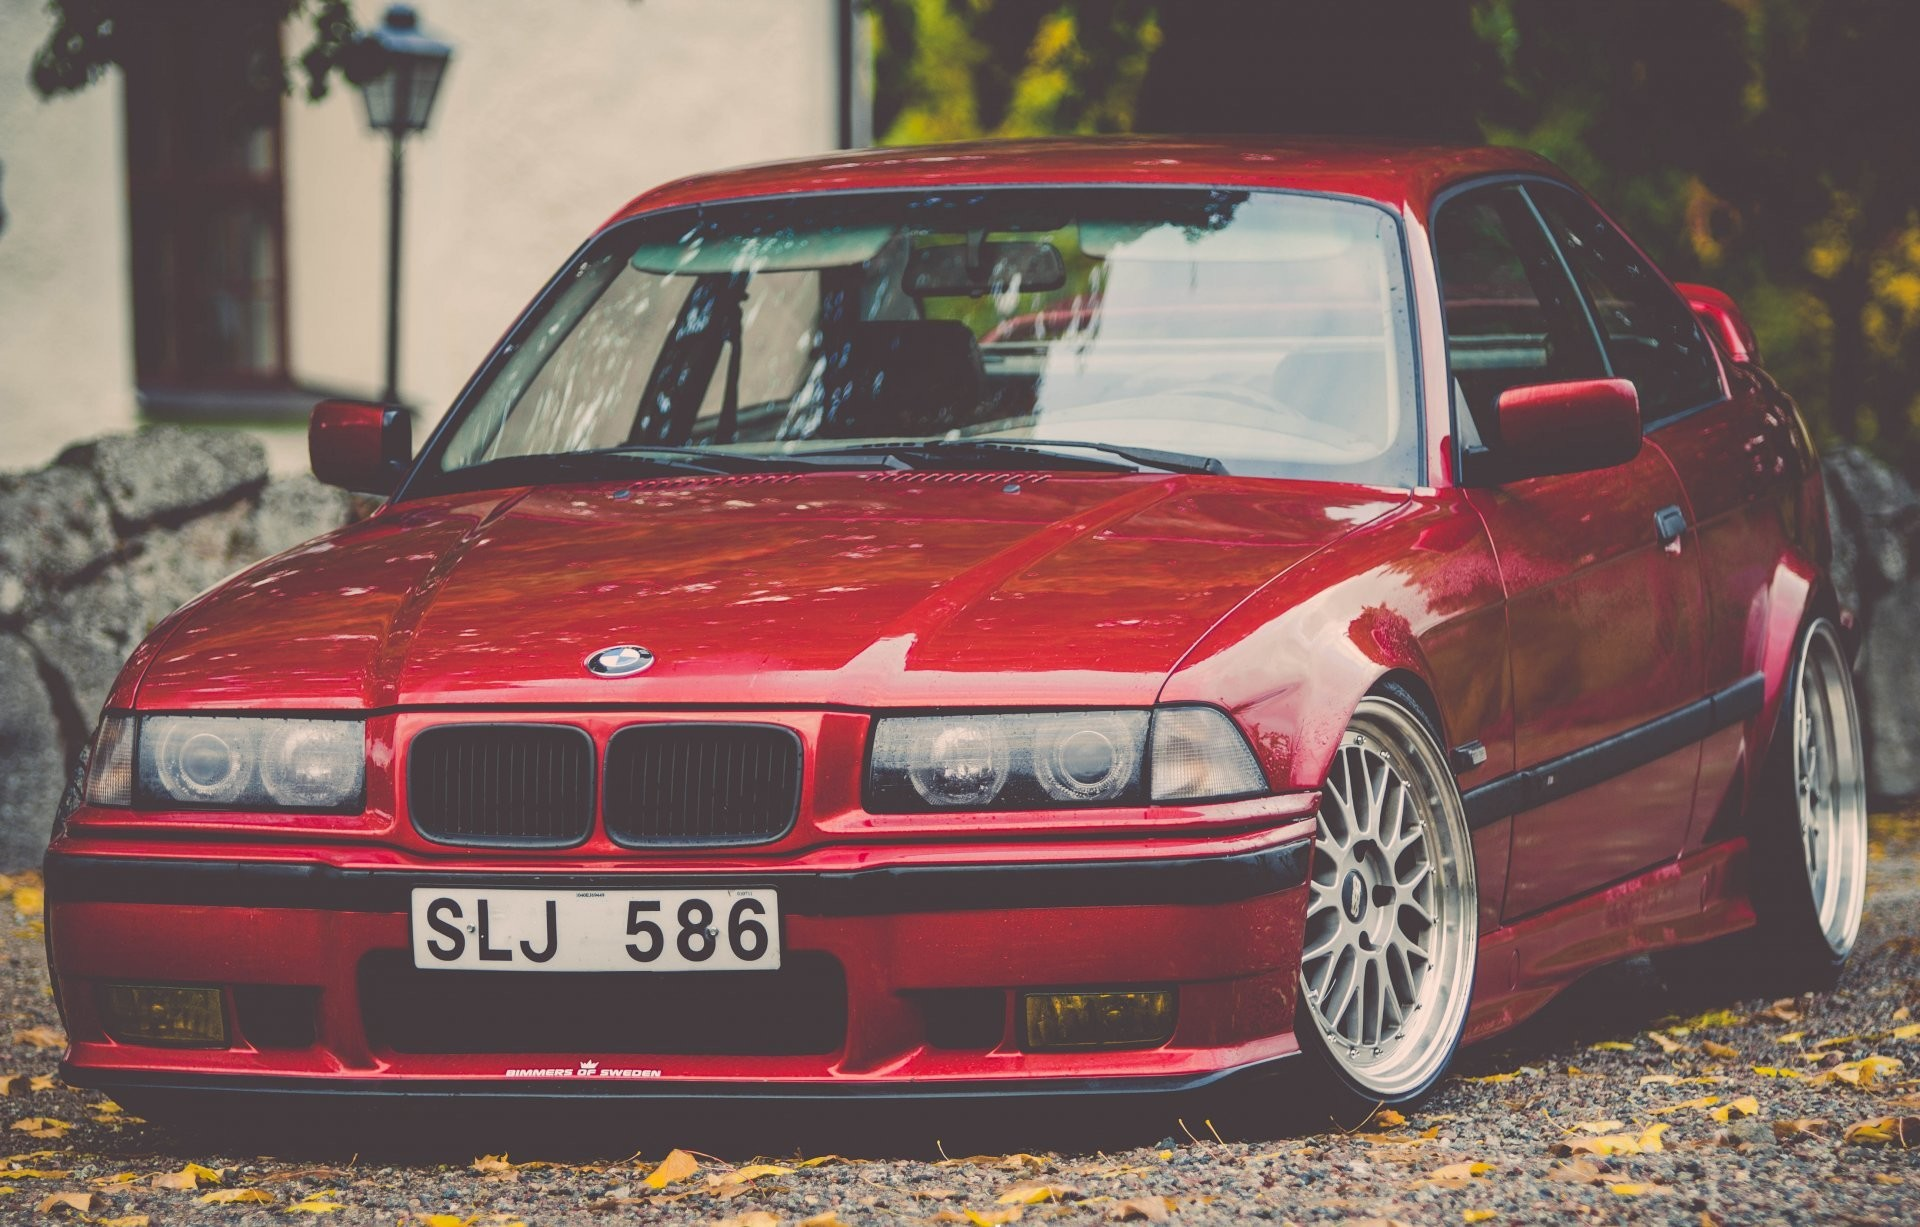 1920x1227 bmw e36 m3 bmw tuning stance red